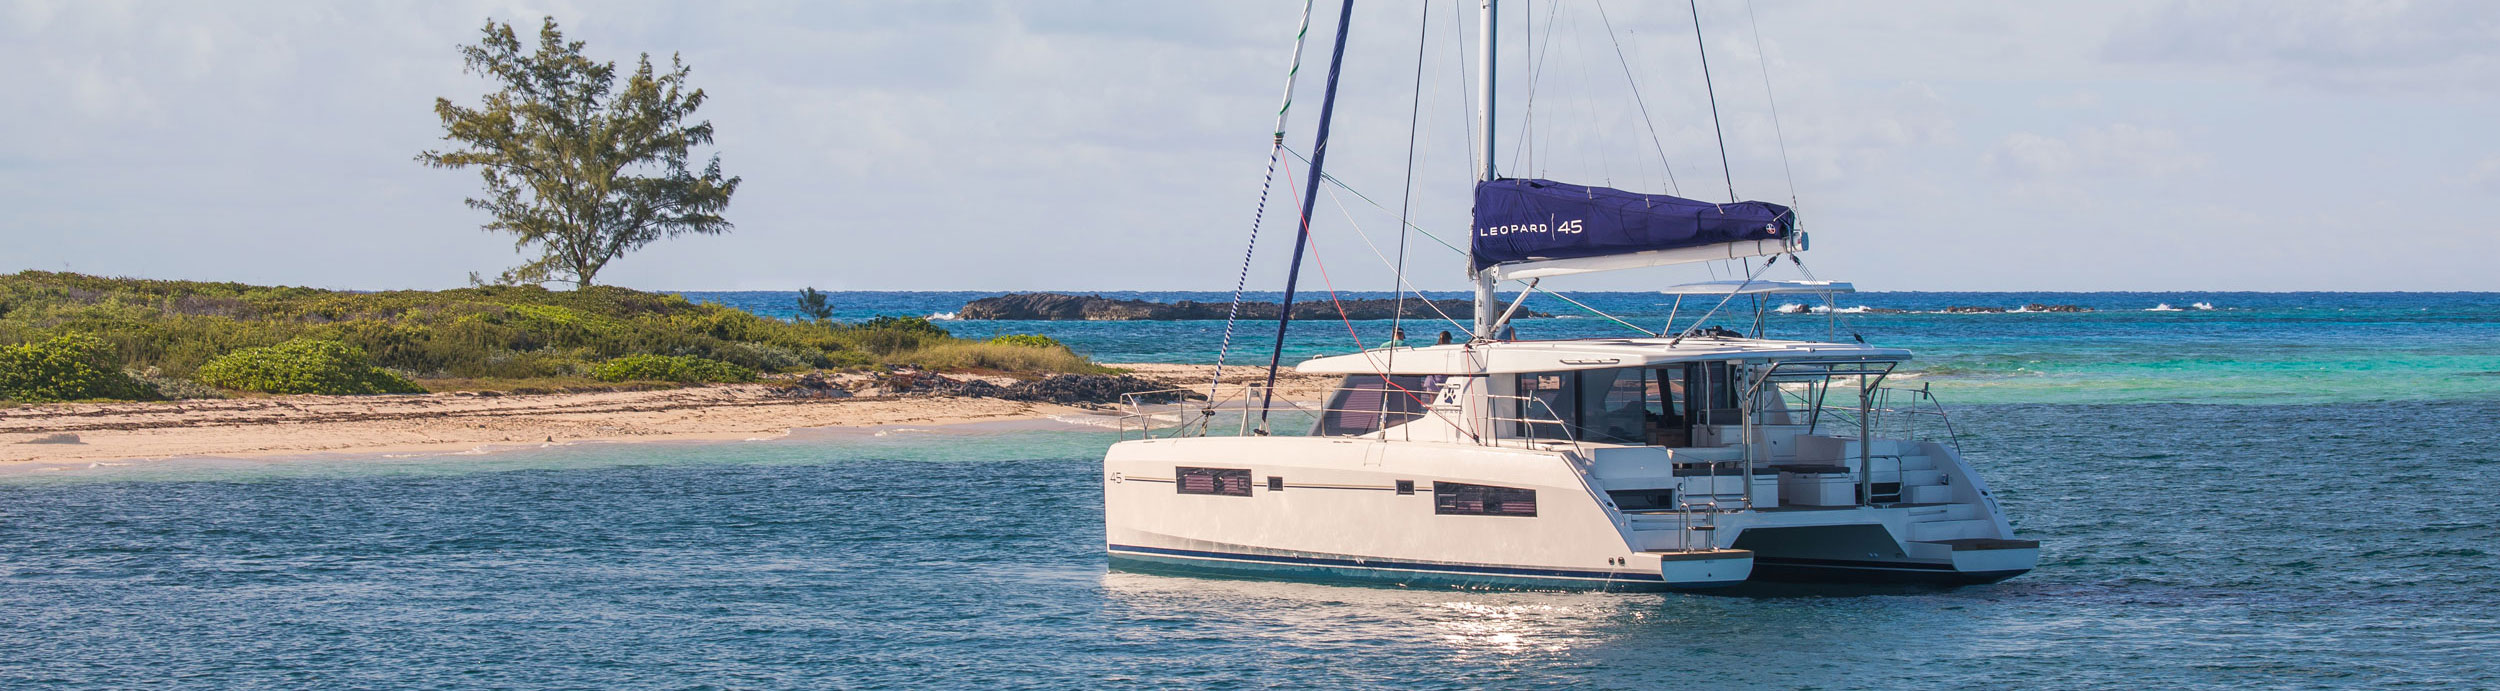 Leopard catamaran at anchor in the bahamas